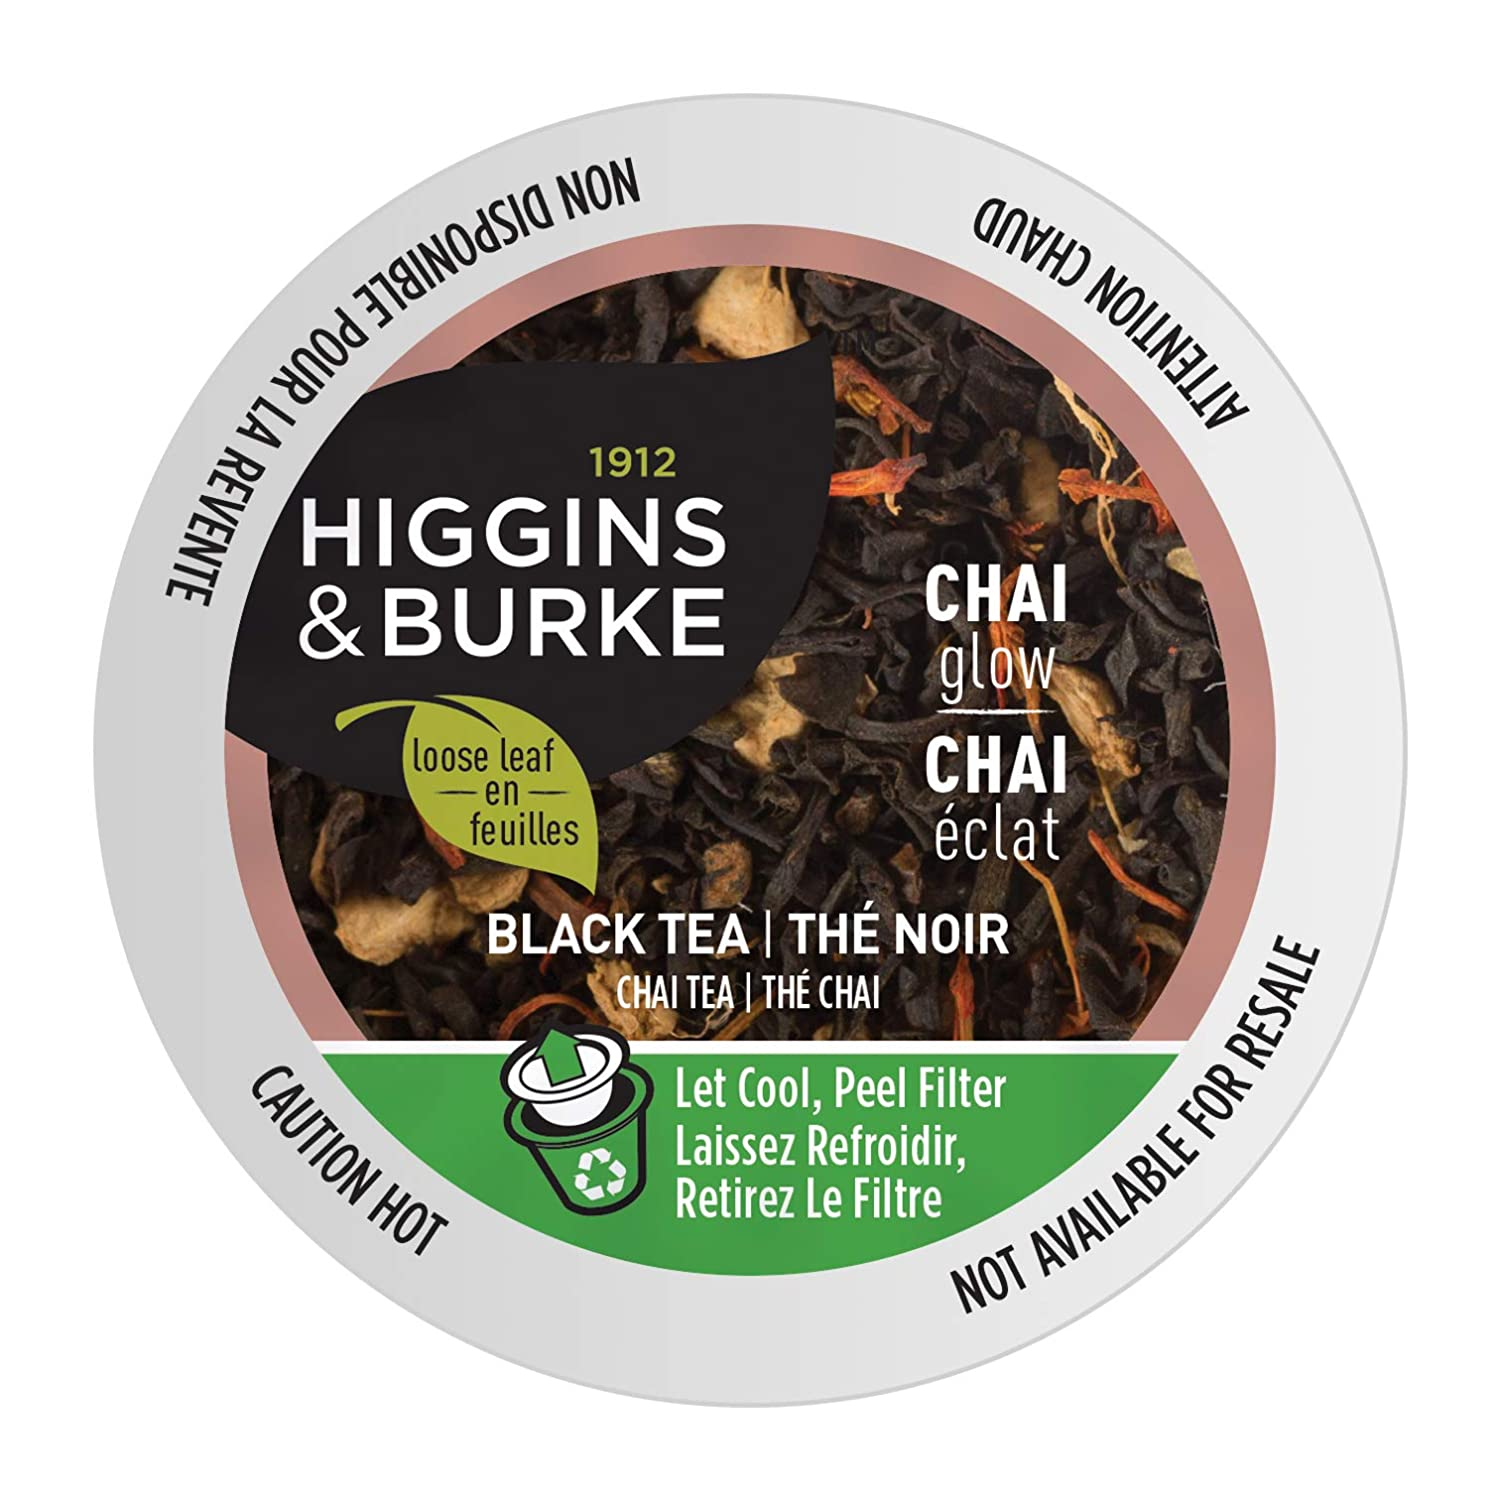 Higgins & Burke Chai Glow, Loose Leaf Black Tea, Keurig K-Cup Brewer Compatible Pods, 24 Count (GMT8811-CP1)